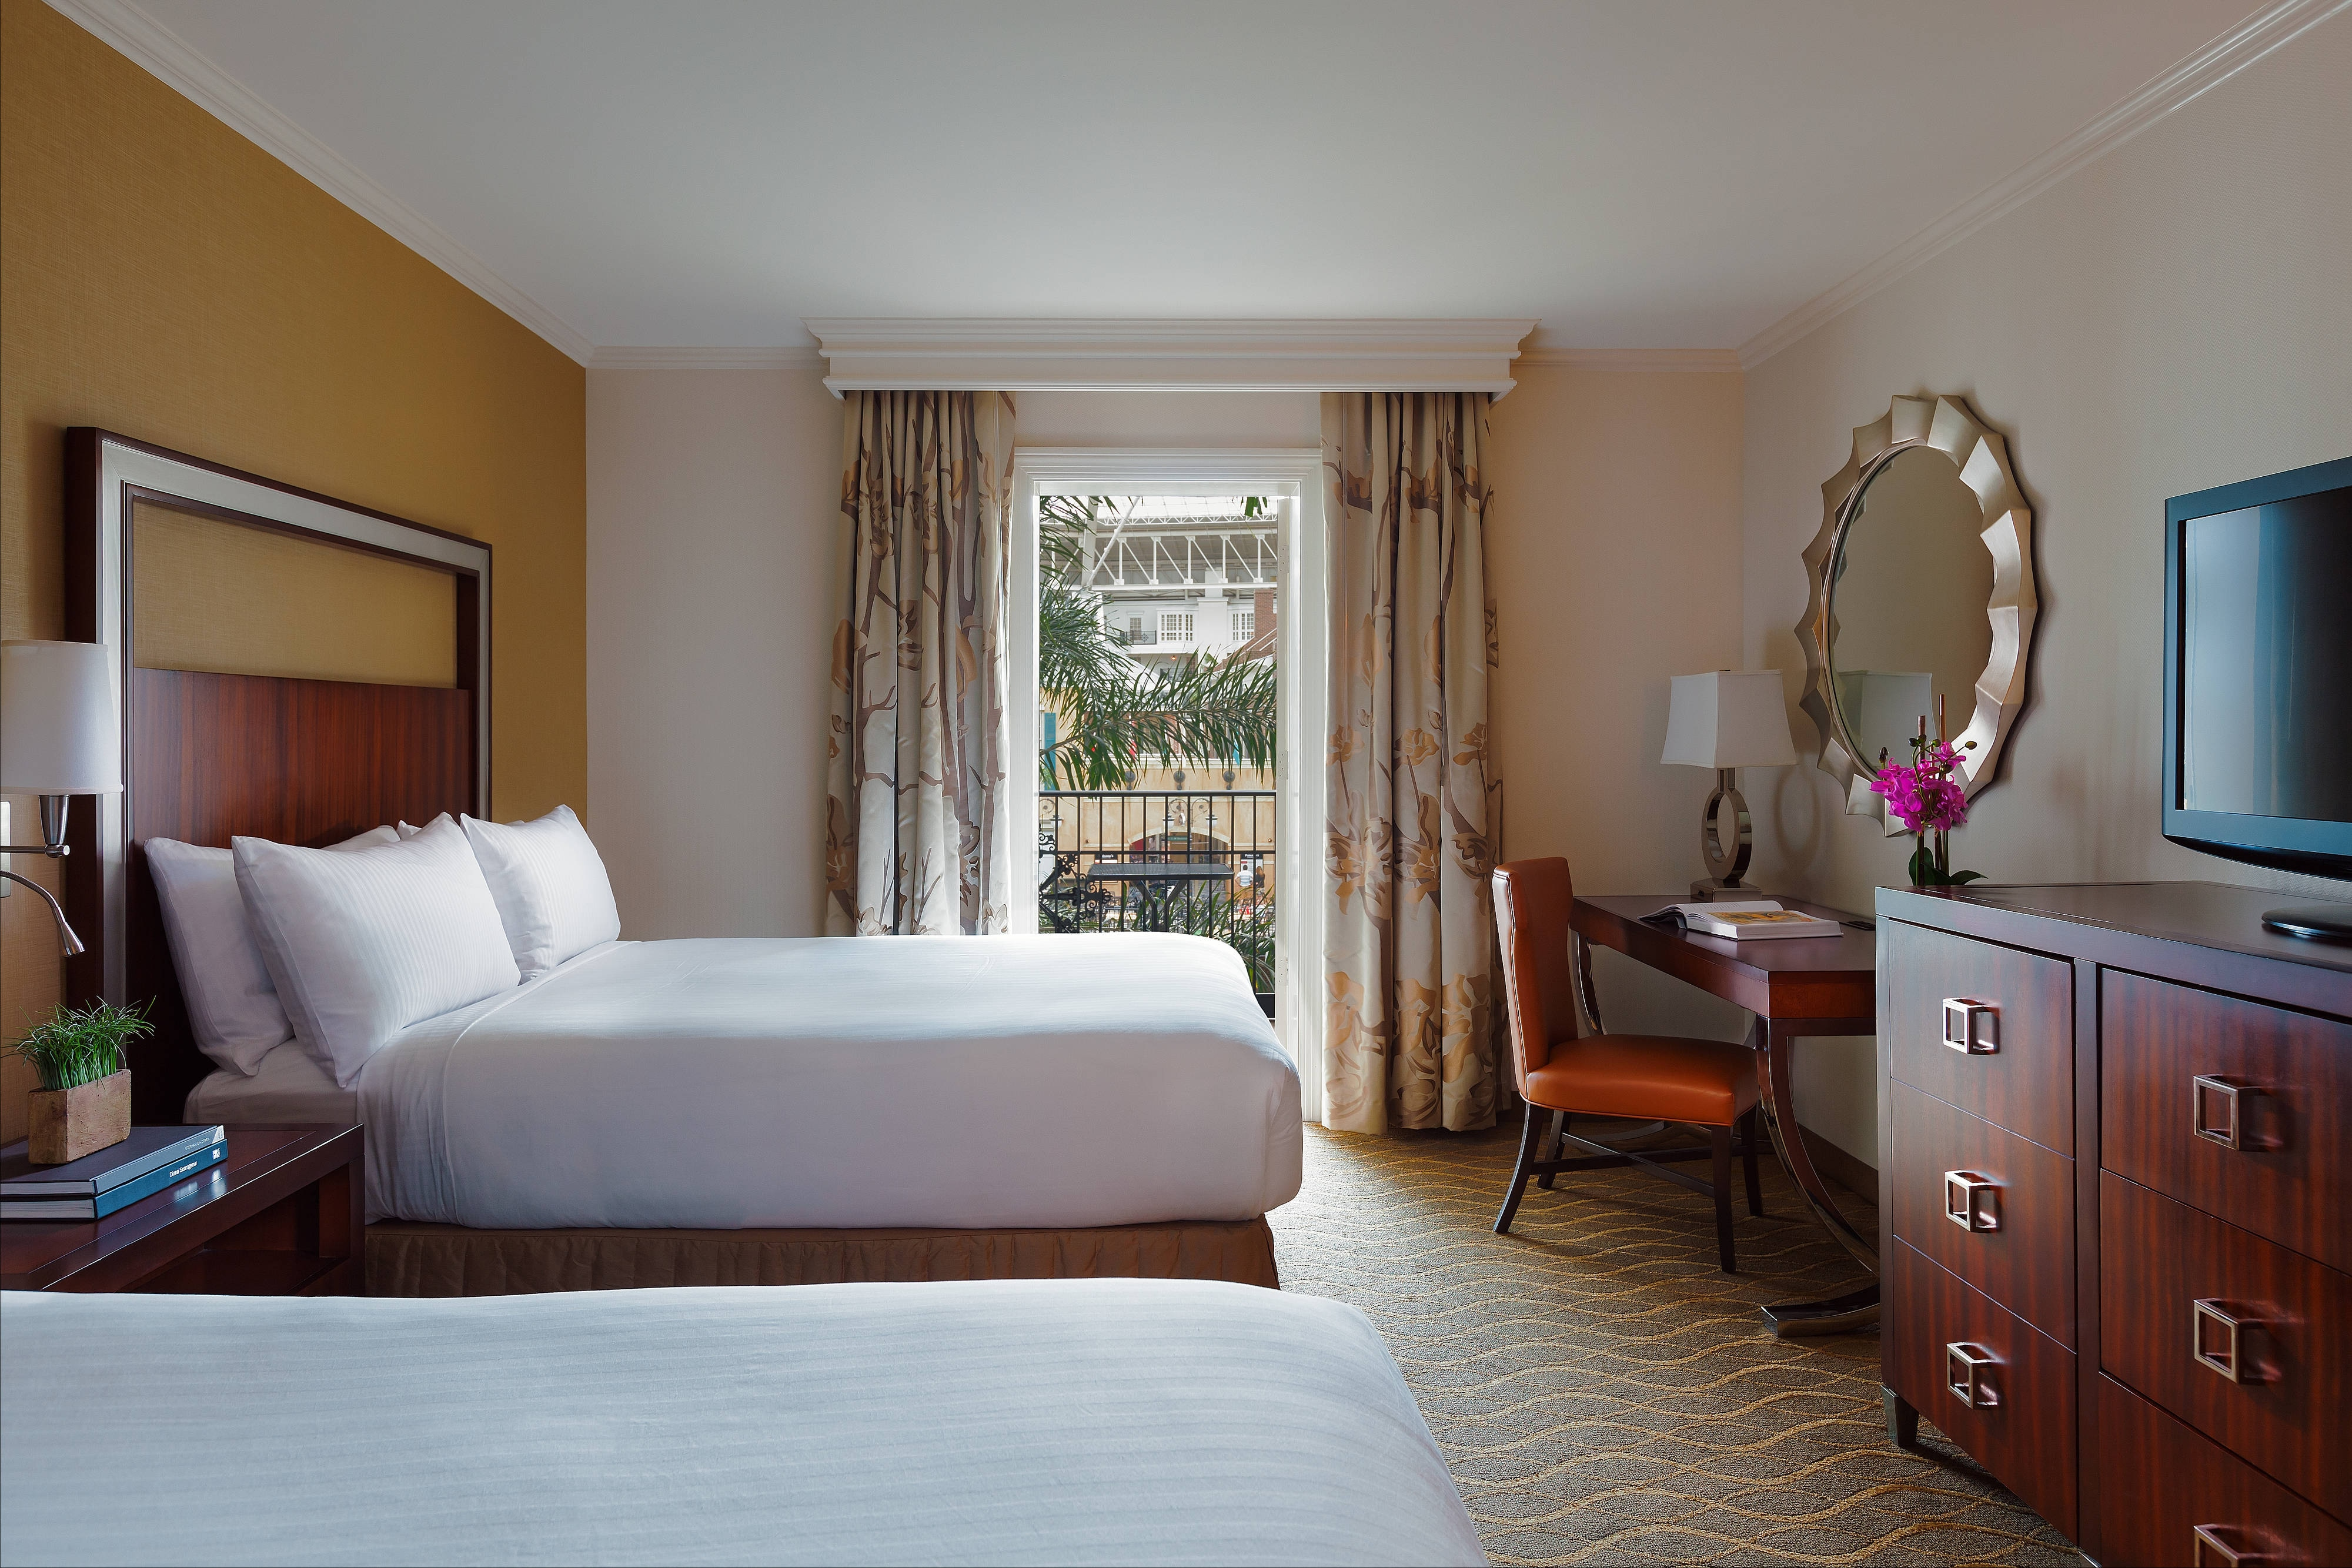 Aaa Discount On Hotel Rooms